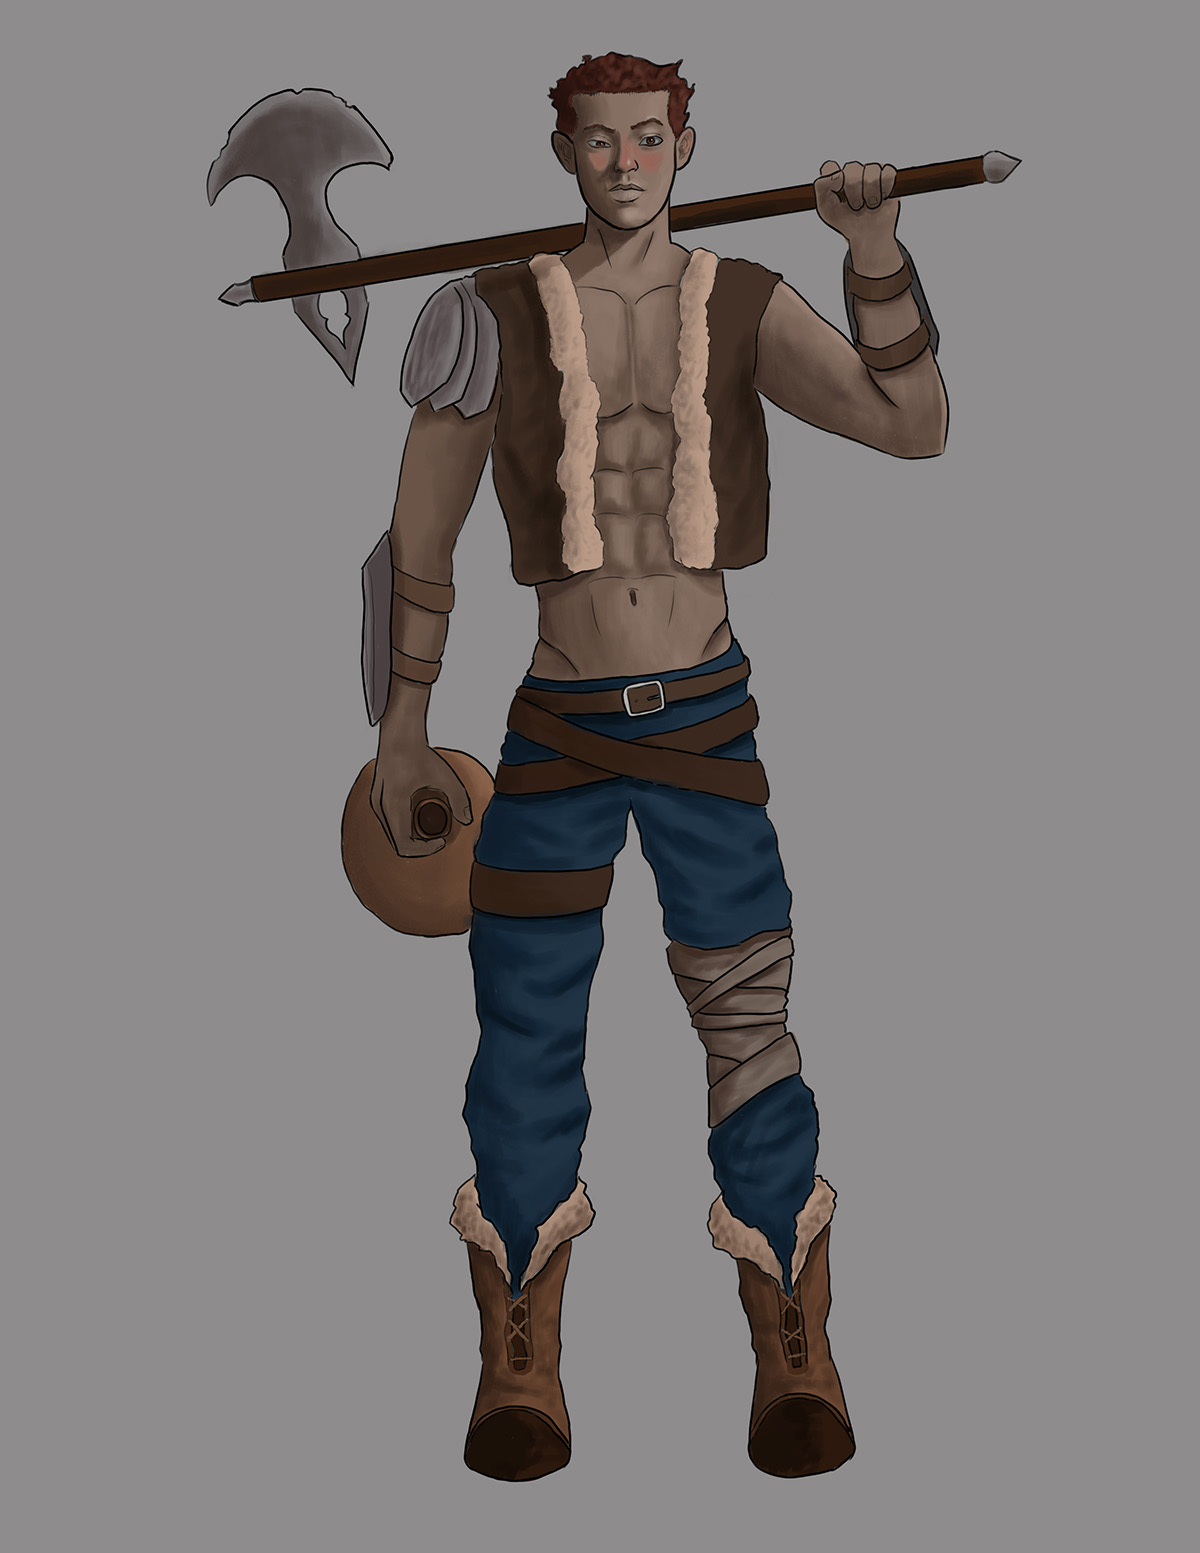 A character design of a man holding and axe and wearing no shirt, jeans and boots.